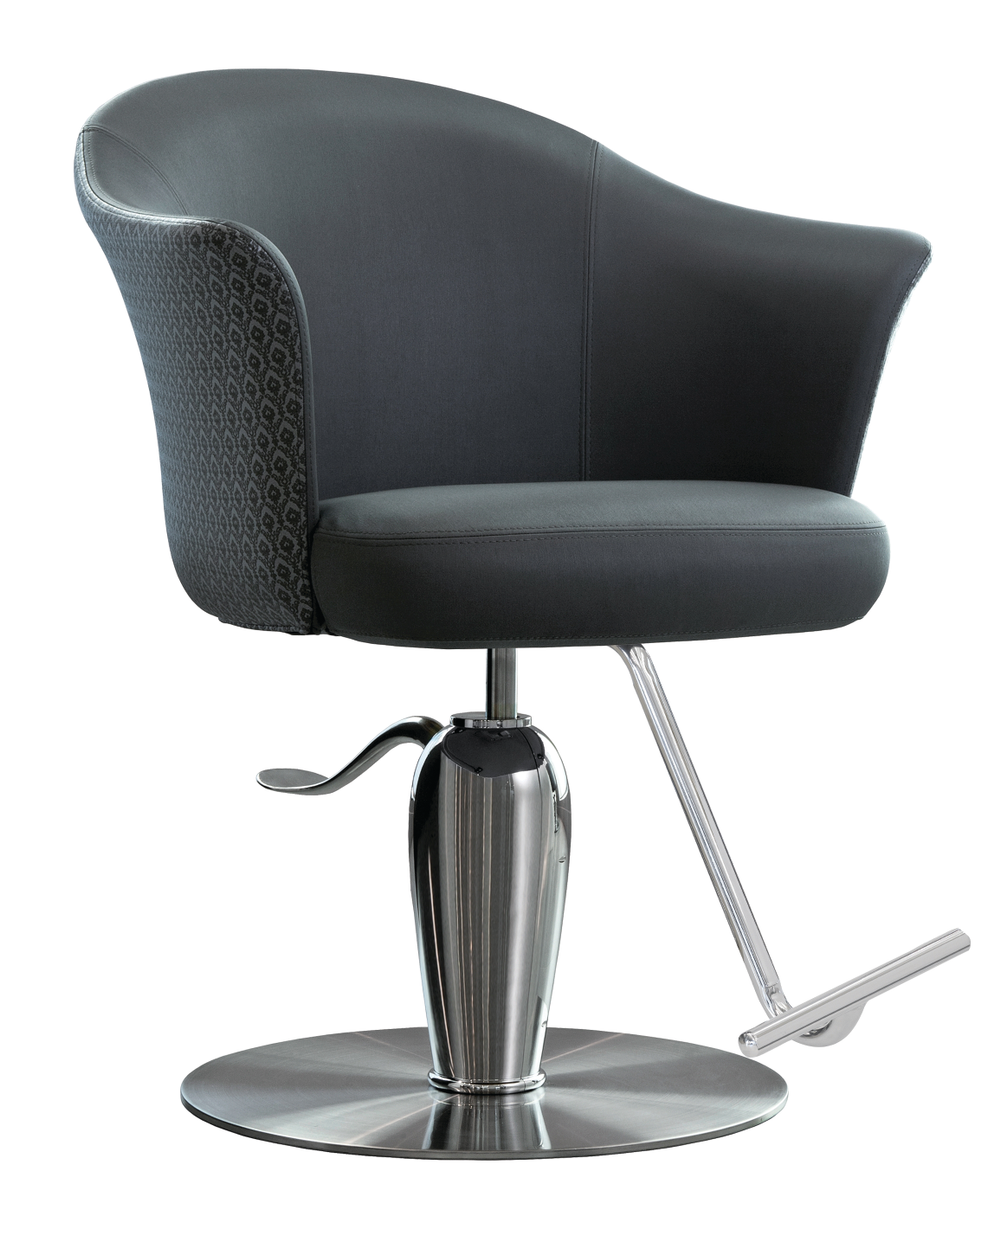 Belvedere's Eufemia Styling Chair